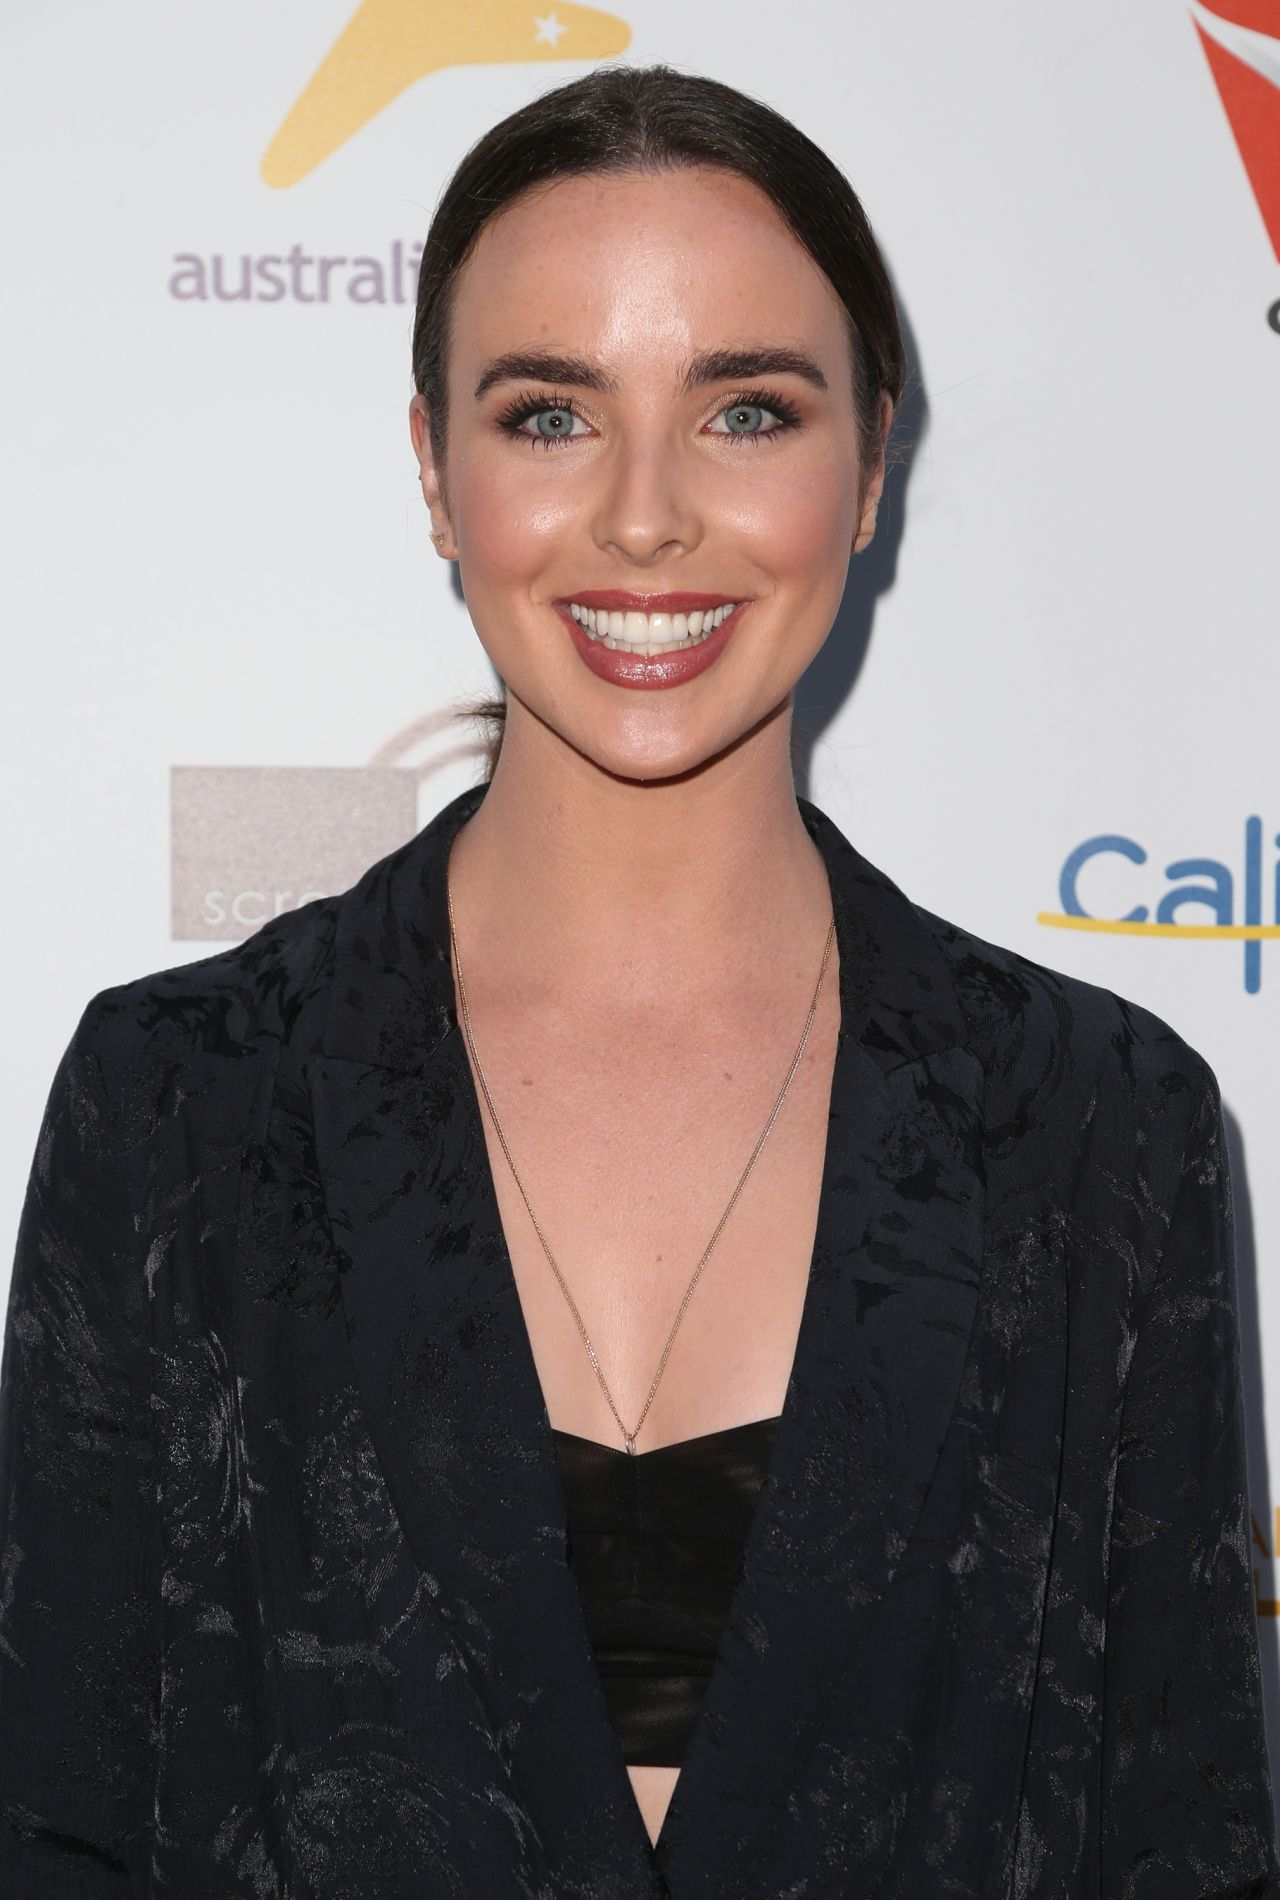 Discussion on this topic: Amelia jane nude, ashleigh-brewer-australians-in-film-awards-benefit/